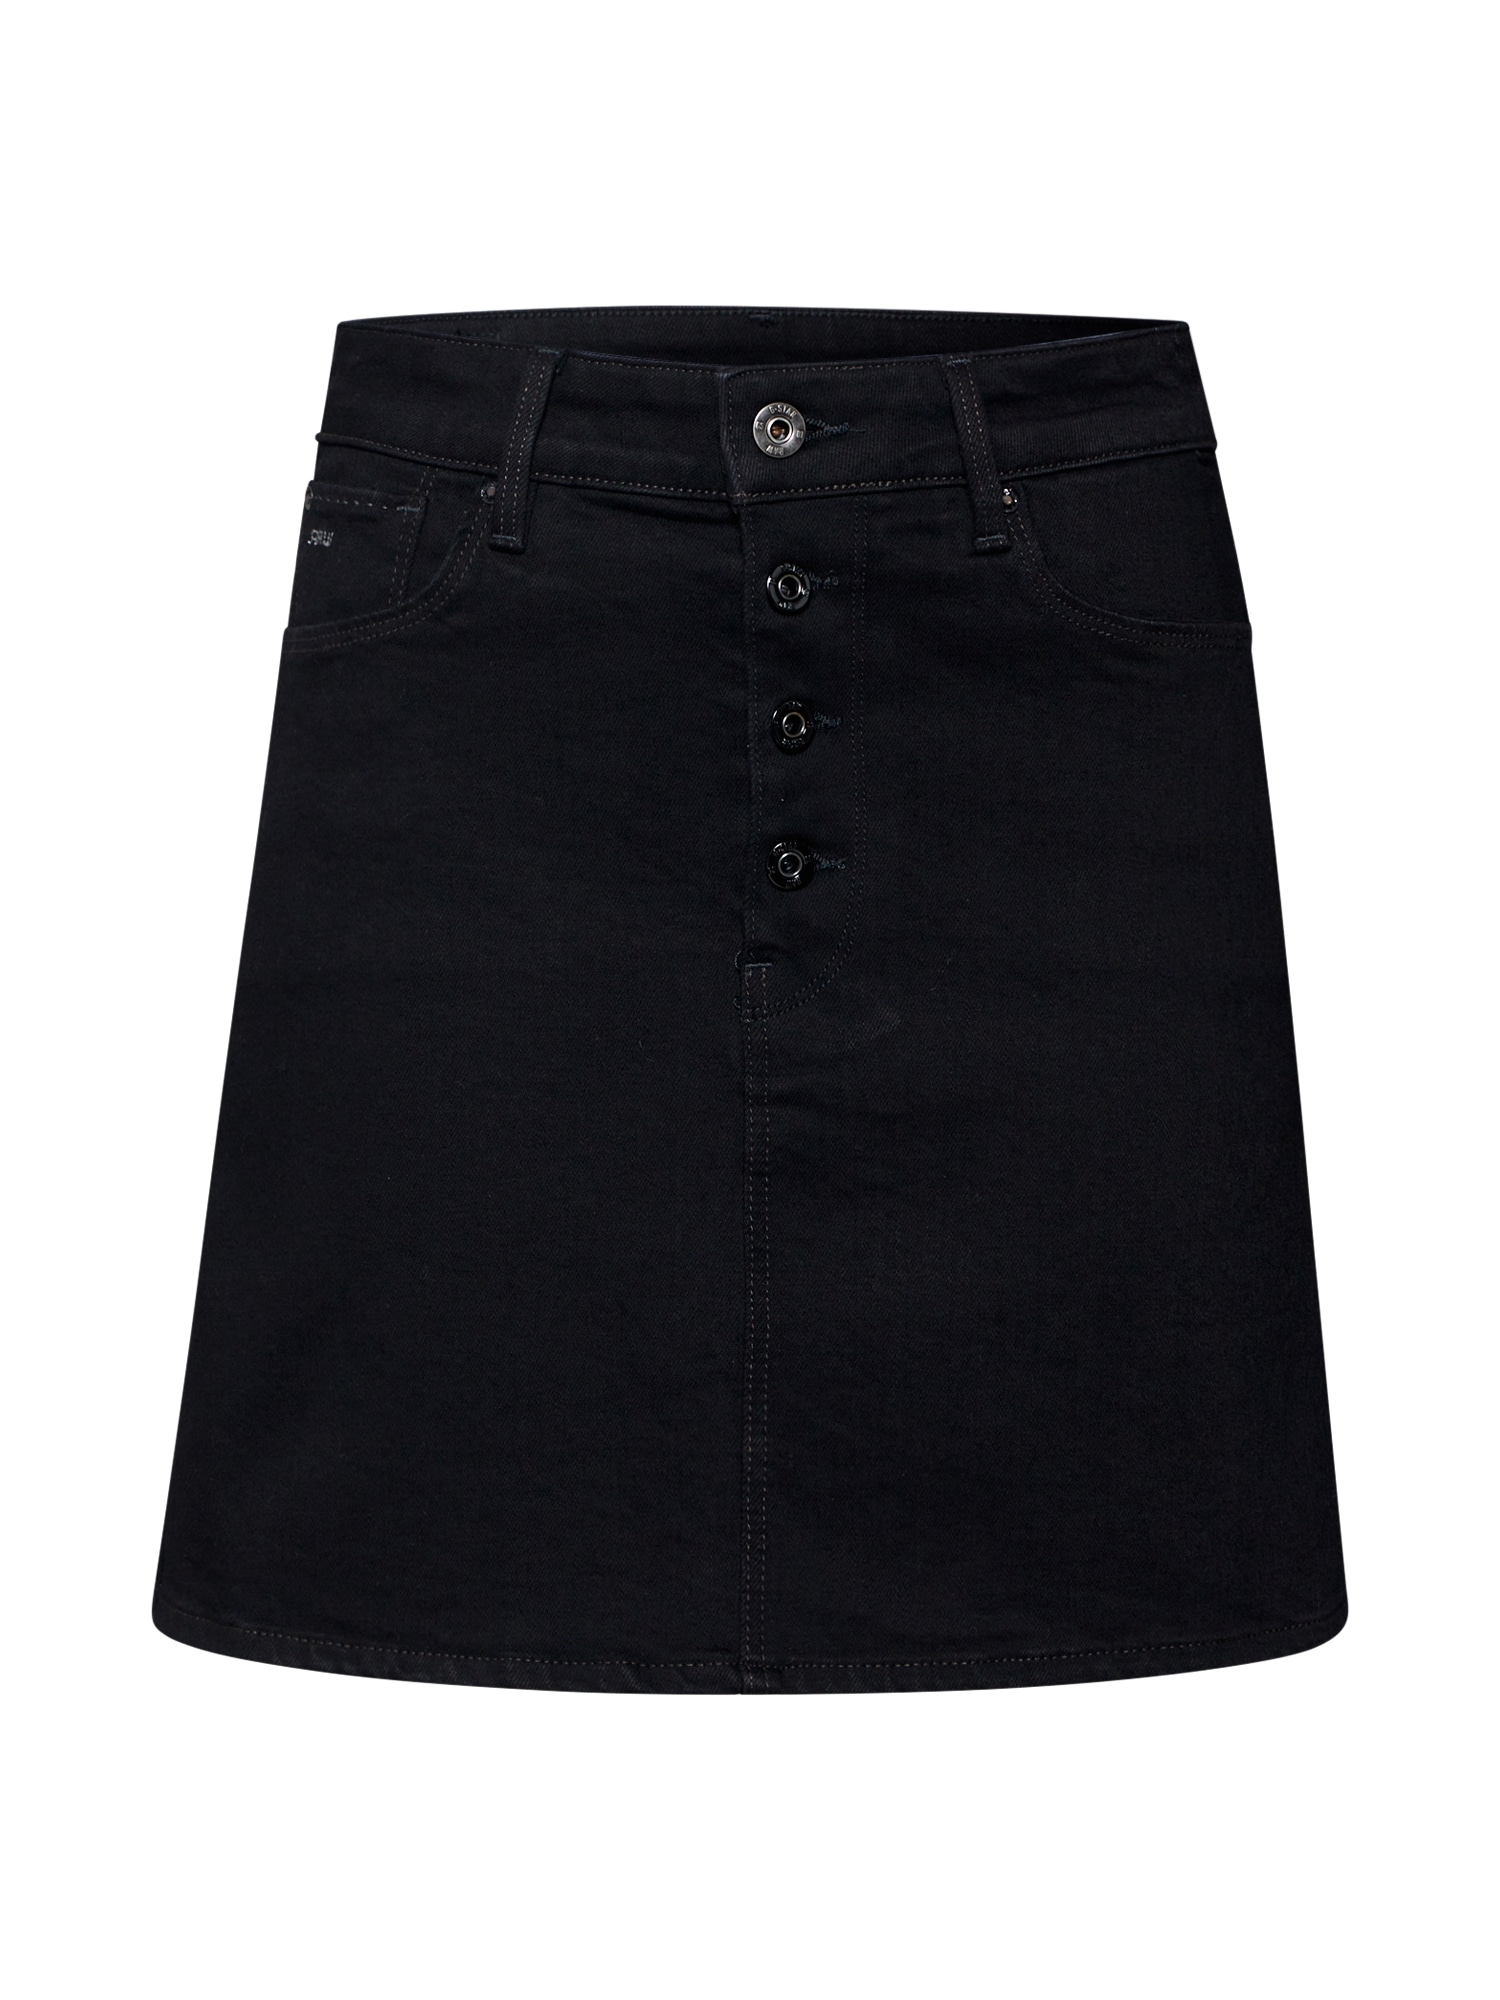 G-Star RAW Sijonas 'Navik Skirt Pop' juoda